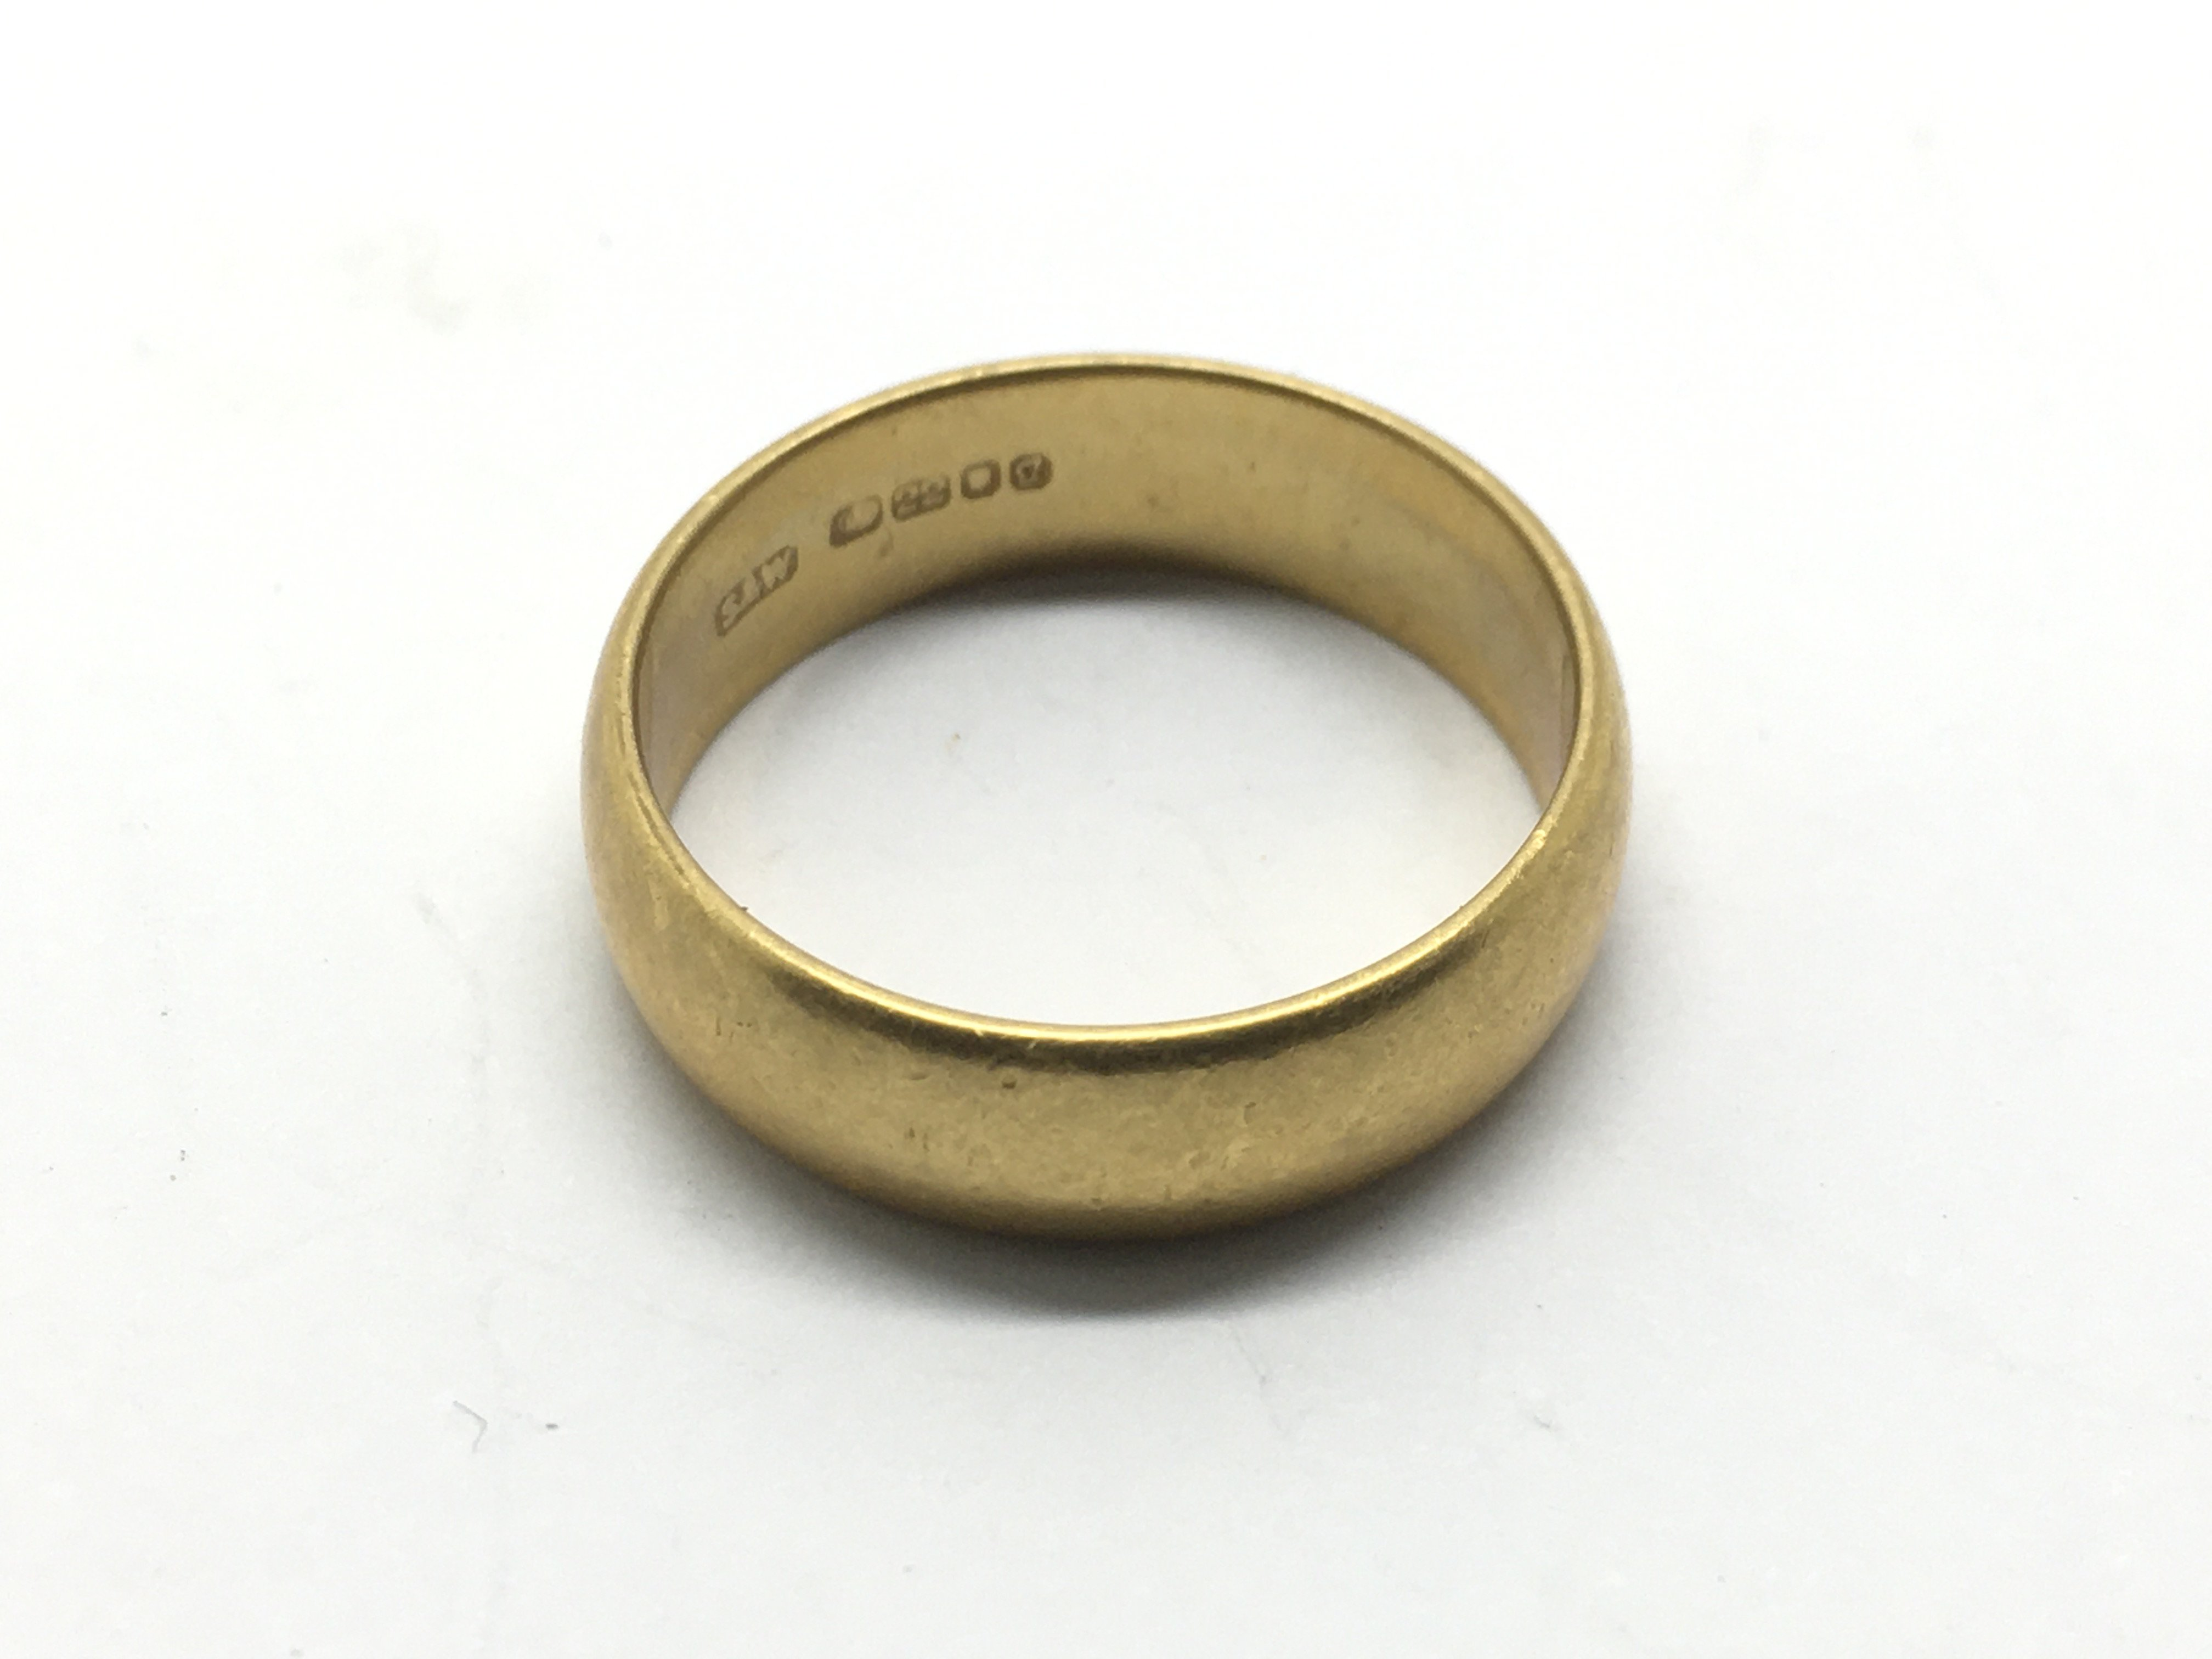 A 22ct gold wedding band, approx 7g.